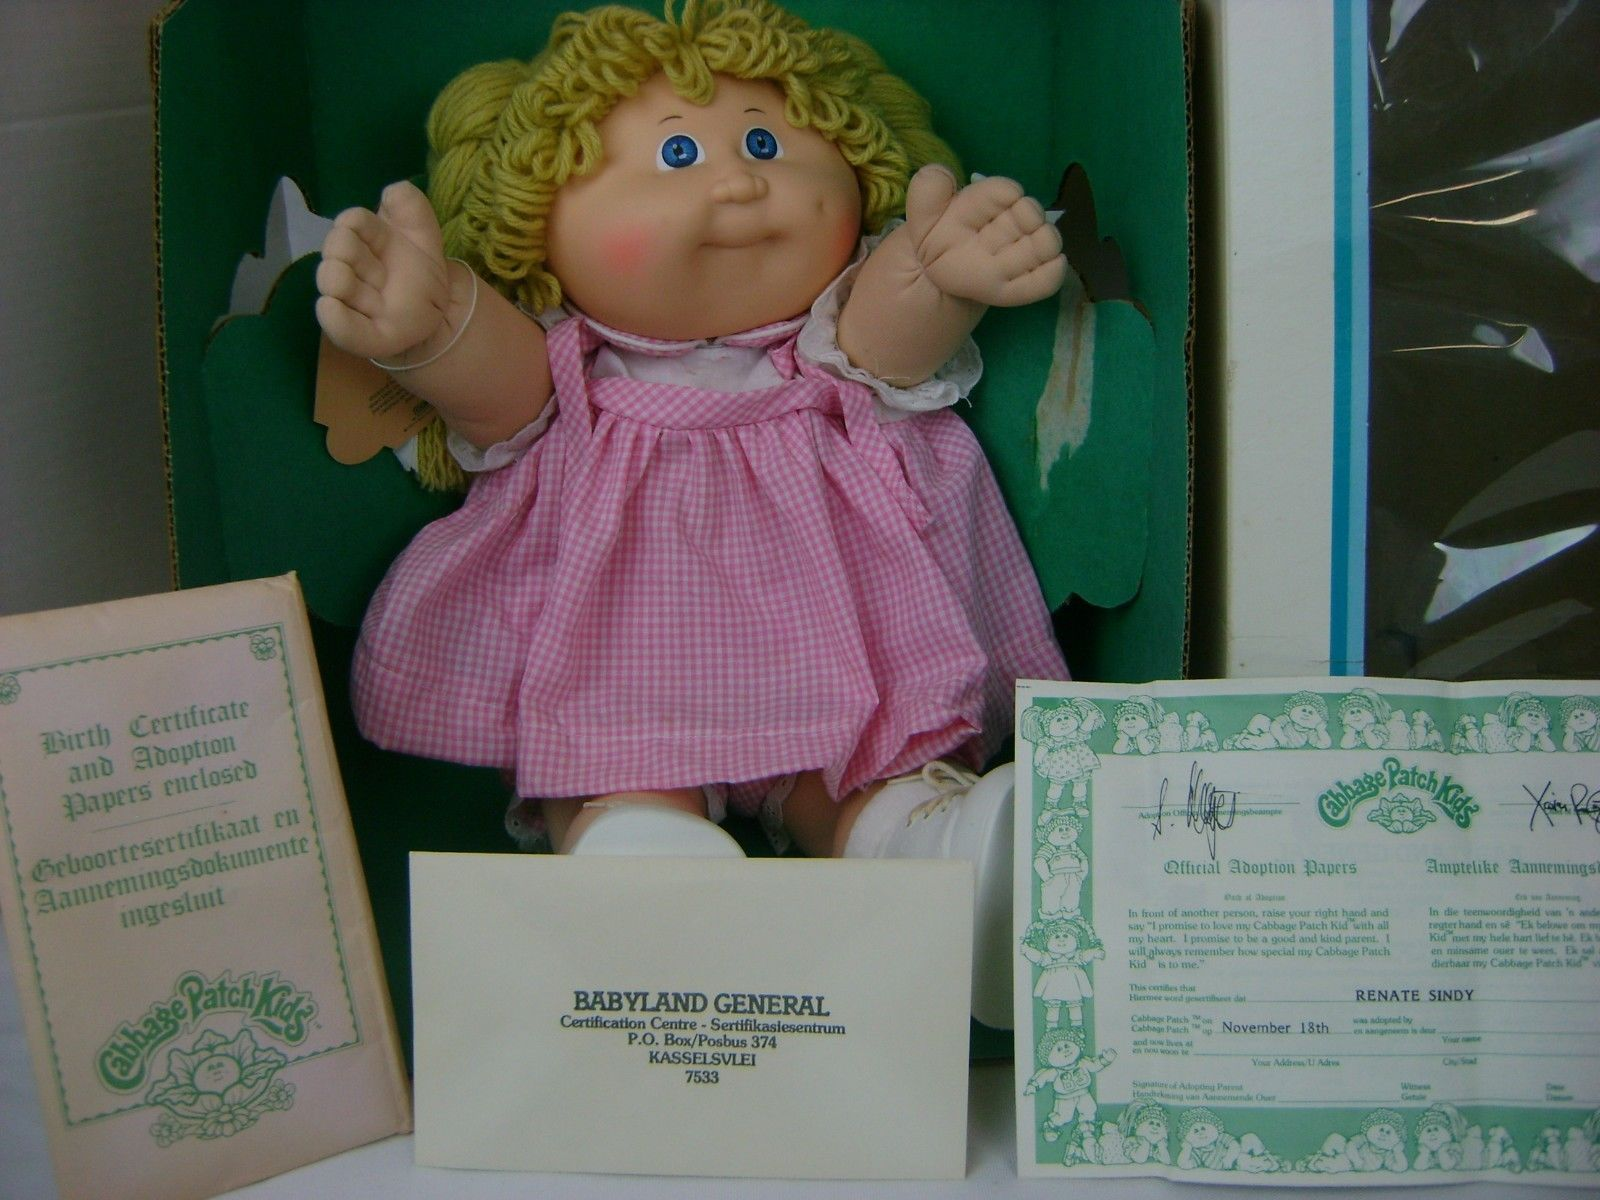 Vintage 1985 Coleco Cabbage Patch Kids Girl Doll In Box With Birth Certificate Ebay Cabbage Patch Kids Patch Kids Kids